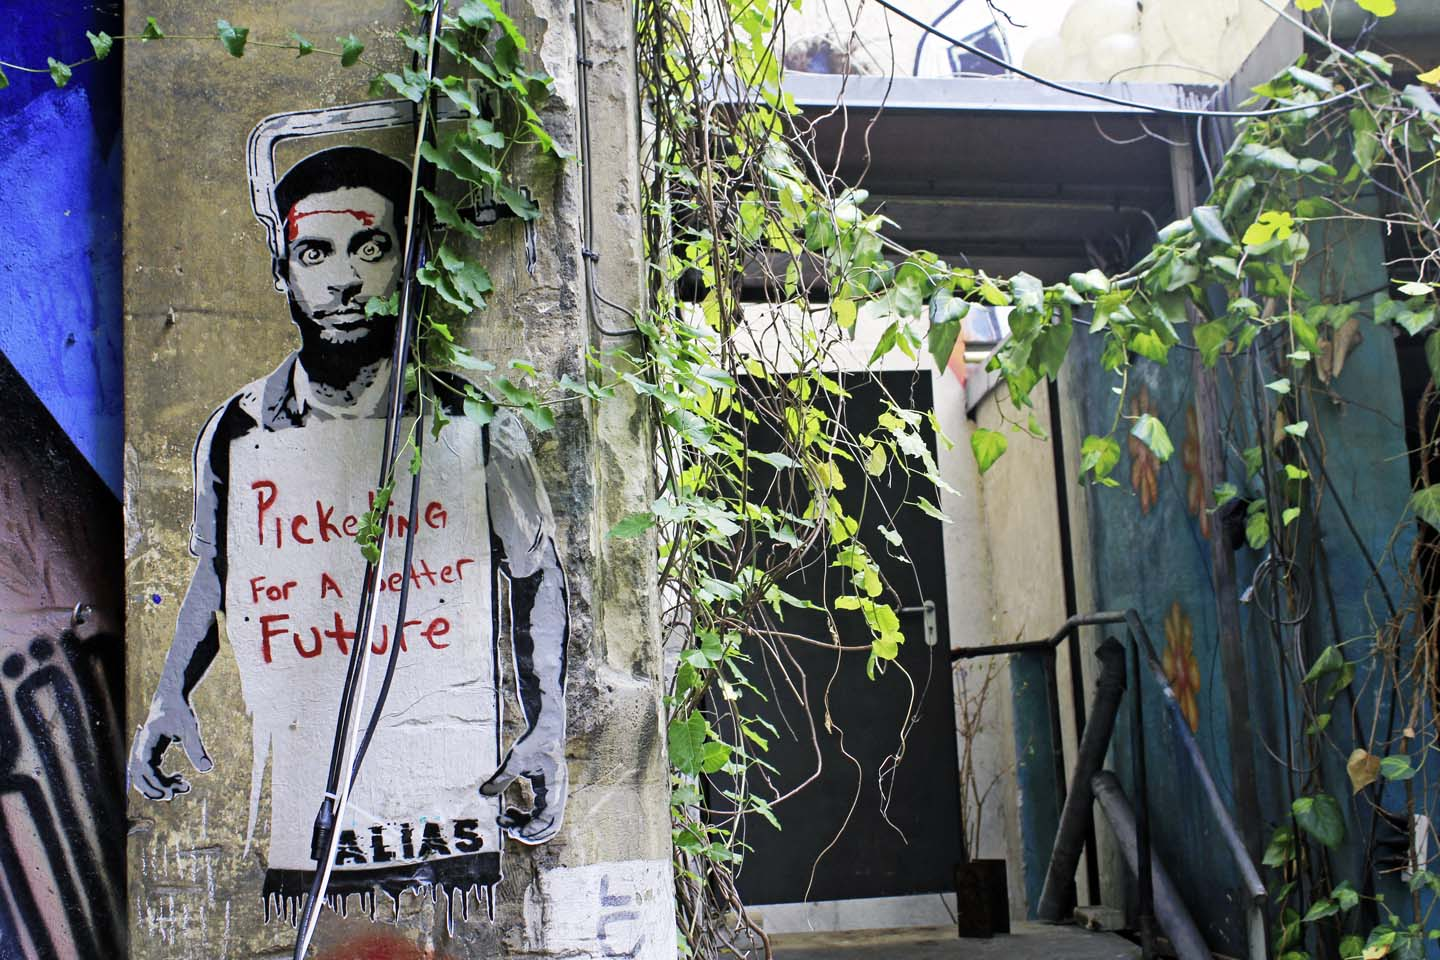 Picketing for a better future by Berlin based stencil Street Artist Alias